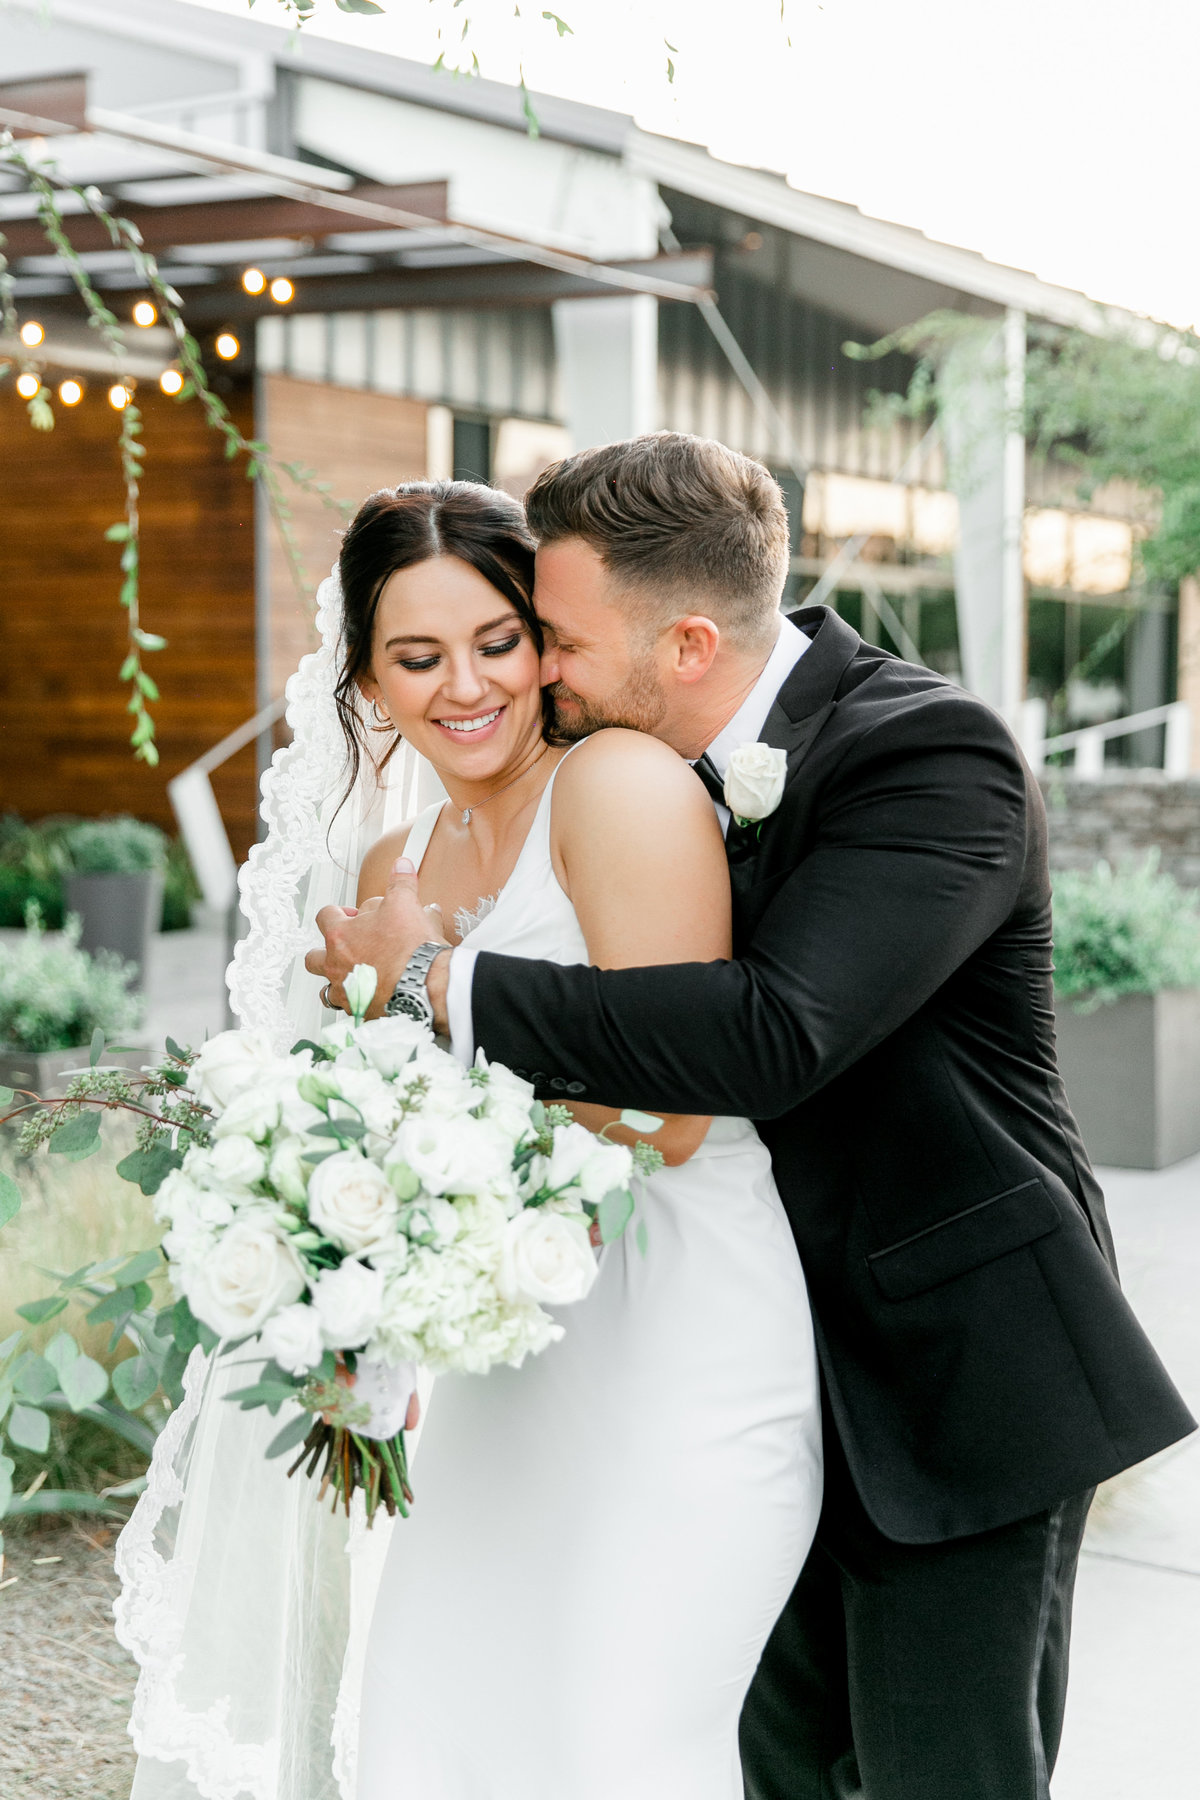 Karlie Colleen Photography - Phoenix Scottsdale Arizona Wedding - The Clayton House - Matt & Jori-607